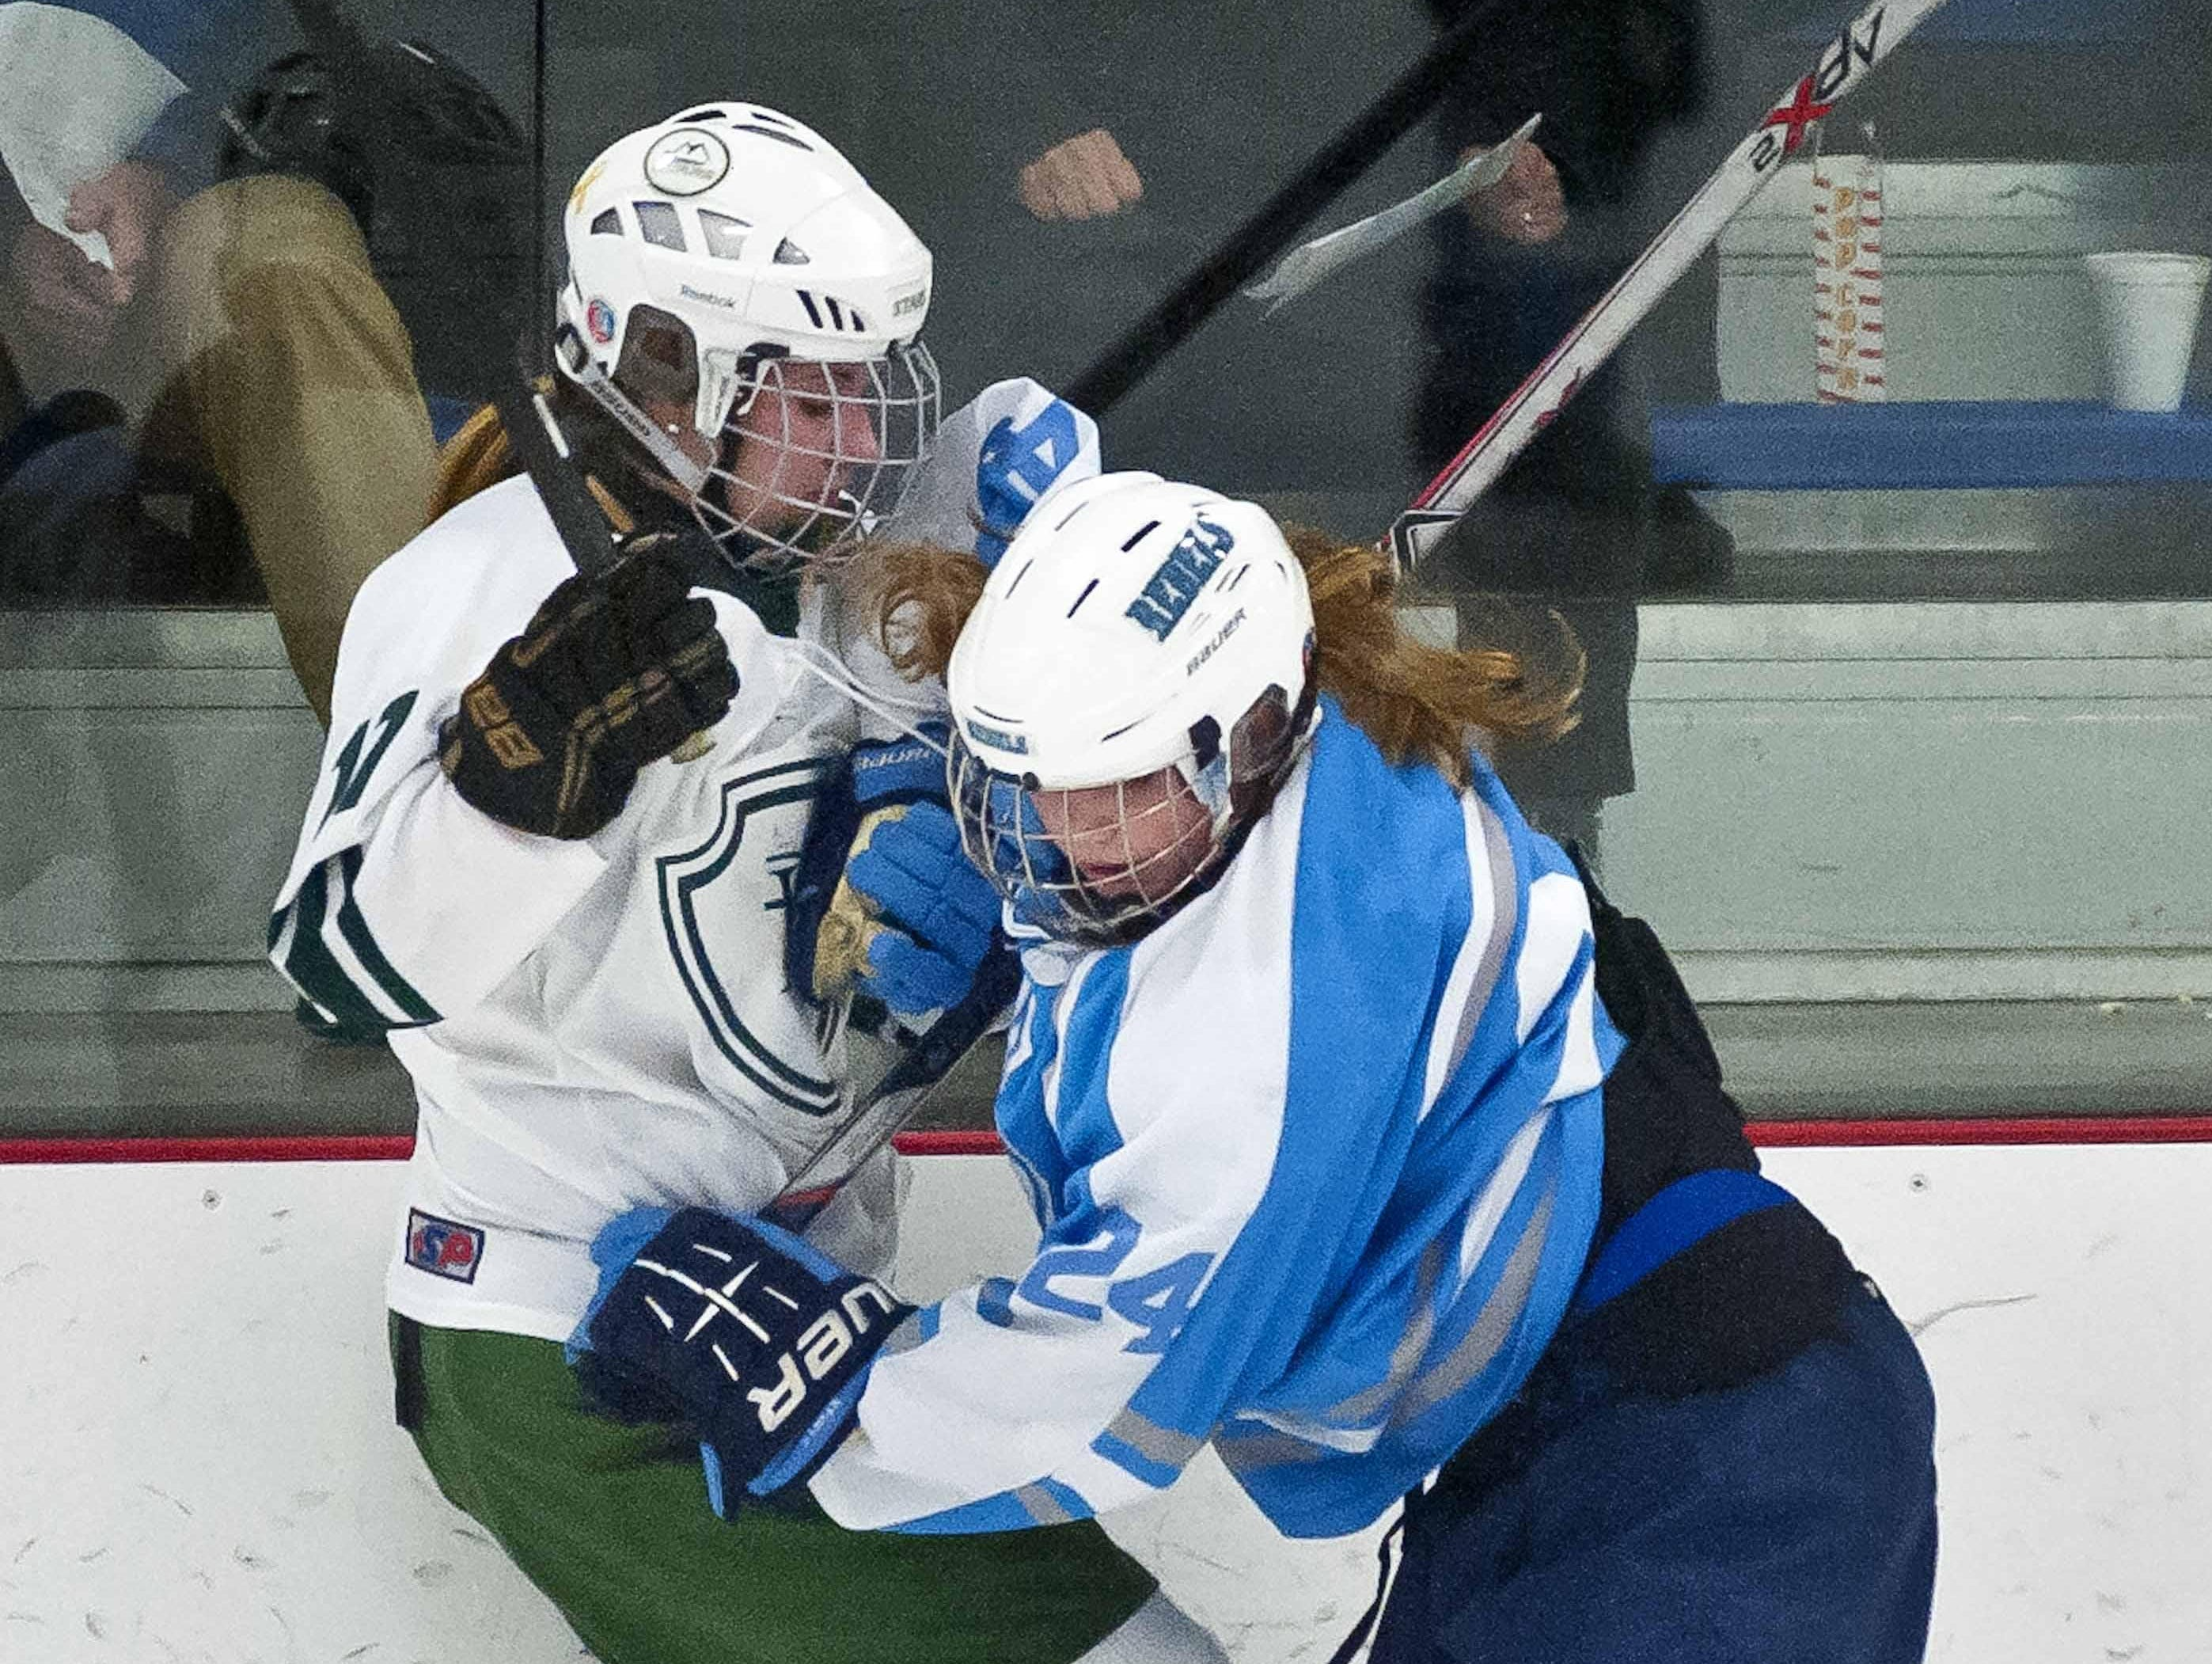 South Burlington's Rachel Pitcher (right) collides with Rice's Anna Connerty in a high school girls hockey game last season.